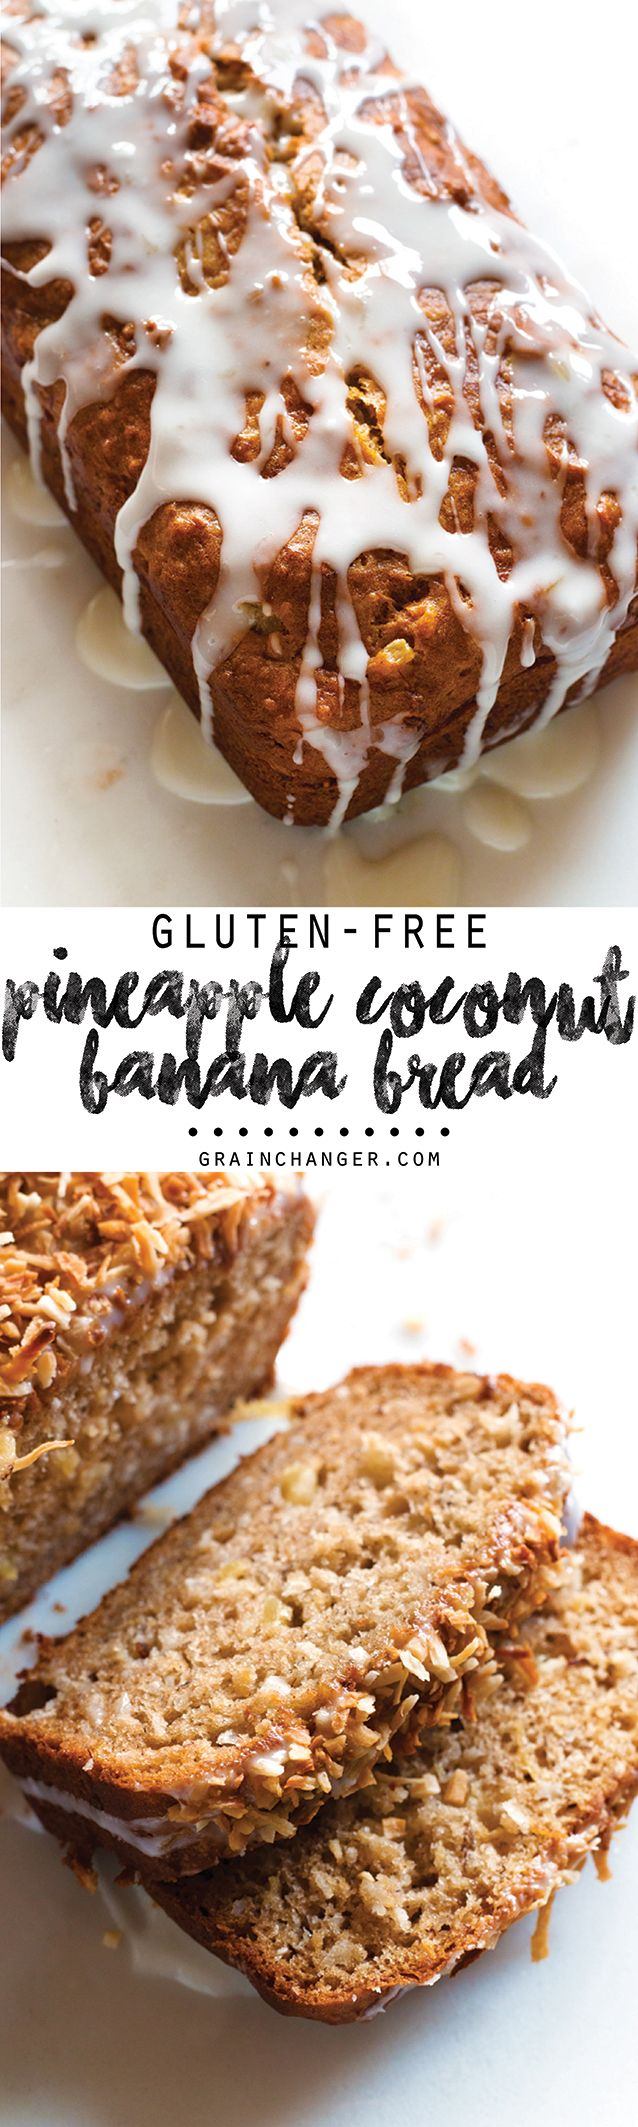 A perfect taste of the tropics! This dairy-free, Gluten-Free Pineapple Coconut Banana Bread will absolutely whisk you away to a warmer, sunnier day (in spirit, at least!)